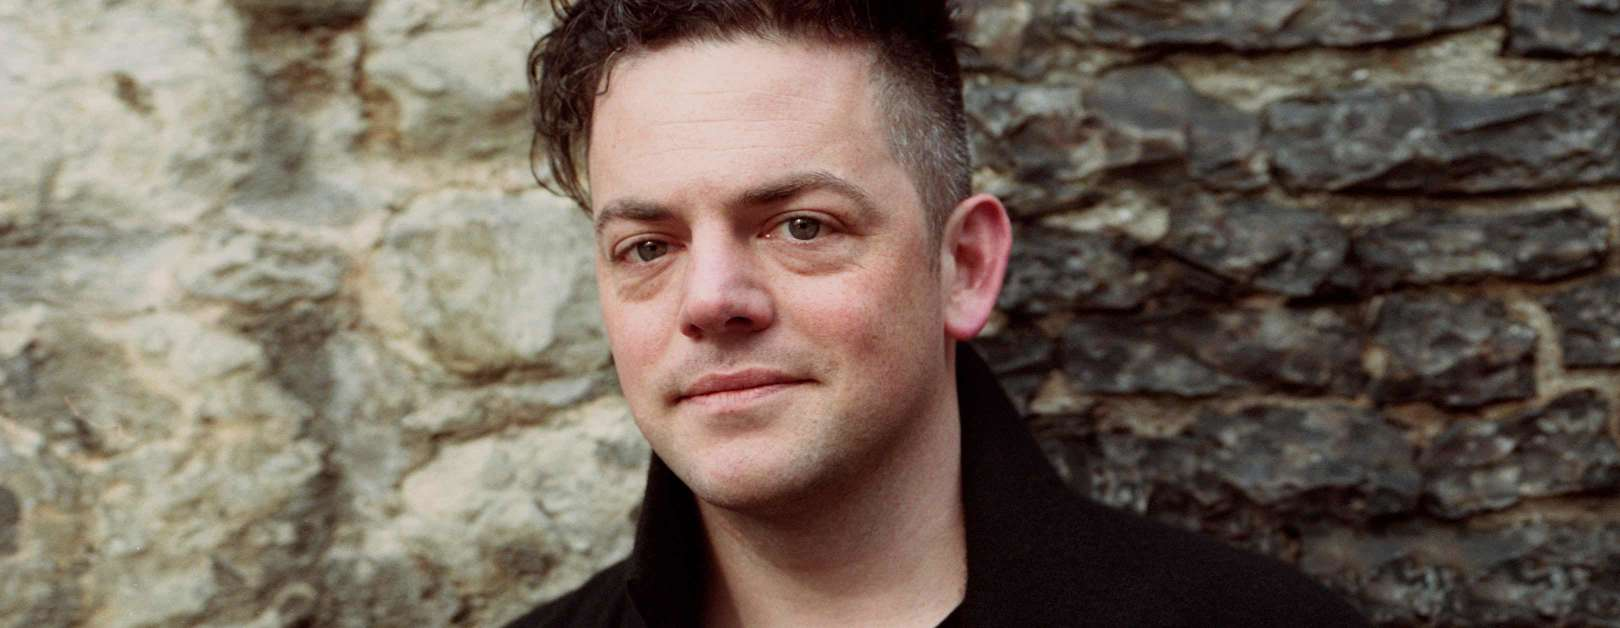 Nightcap: Curated by Nico Muhly